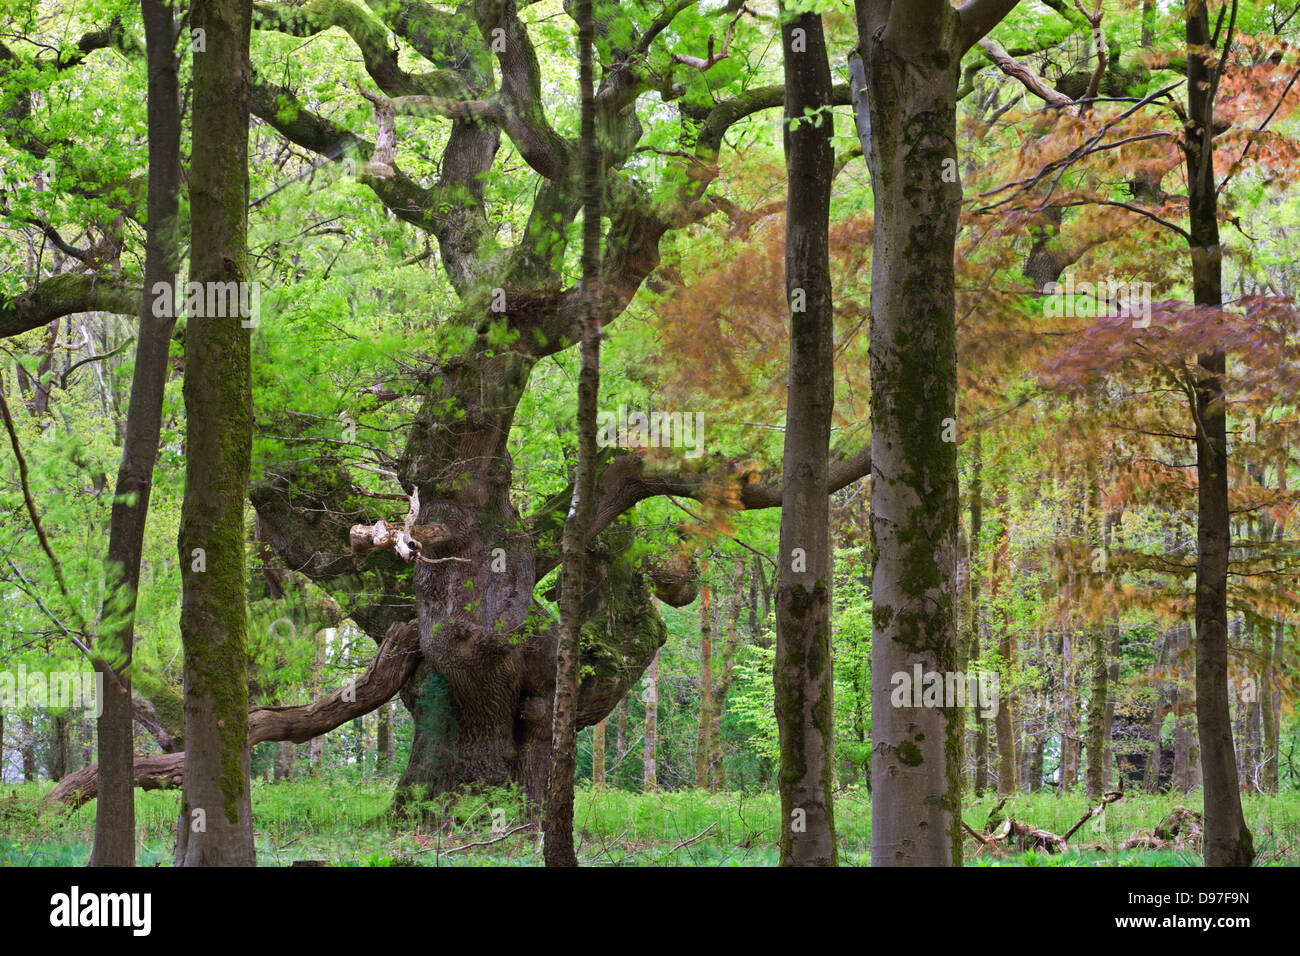 An ancient oak tree deep in the woodland at Savernake Forest, Marlborough, Wiltshire, England. Spring (May). - Stock Image